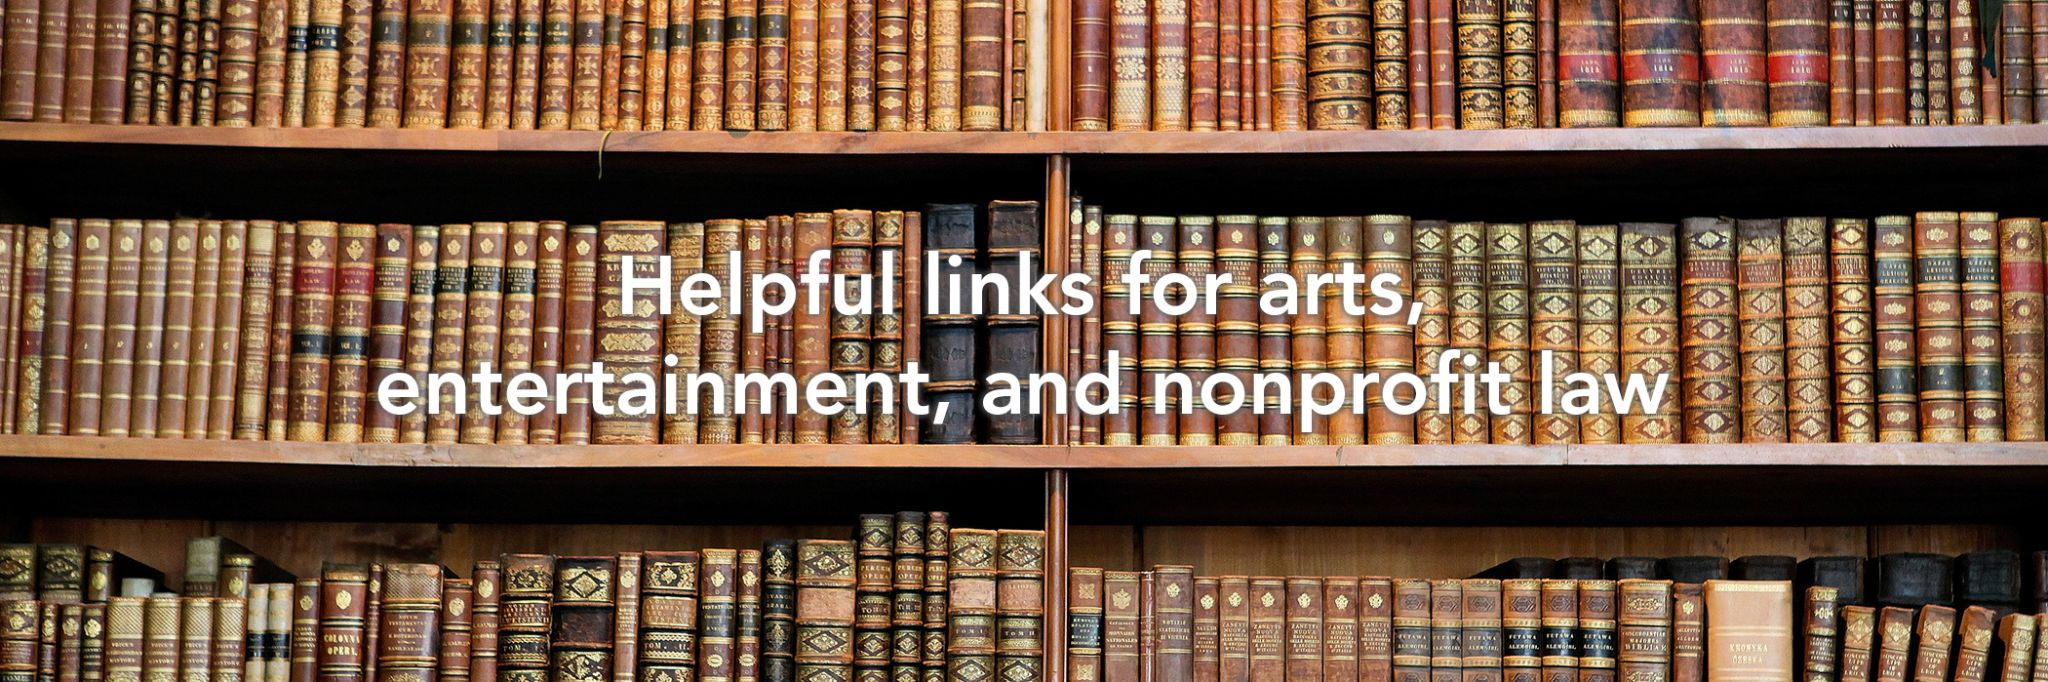 Helpful links for arts, entertainment, and nonprofit law